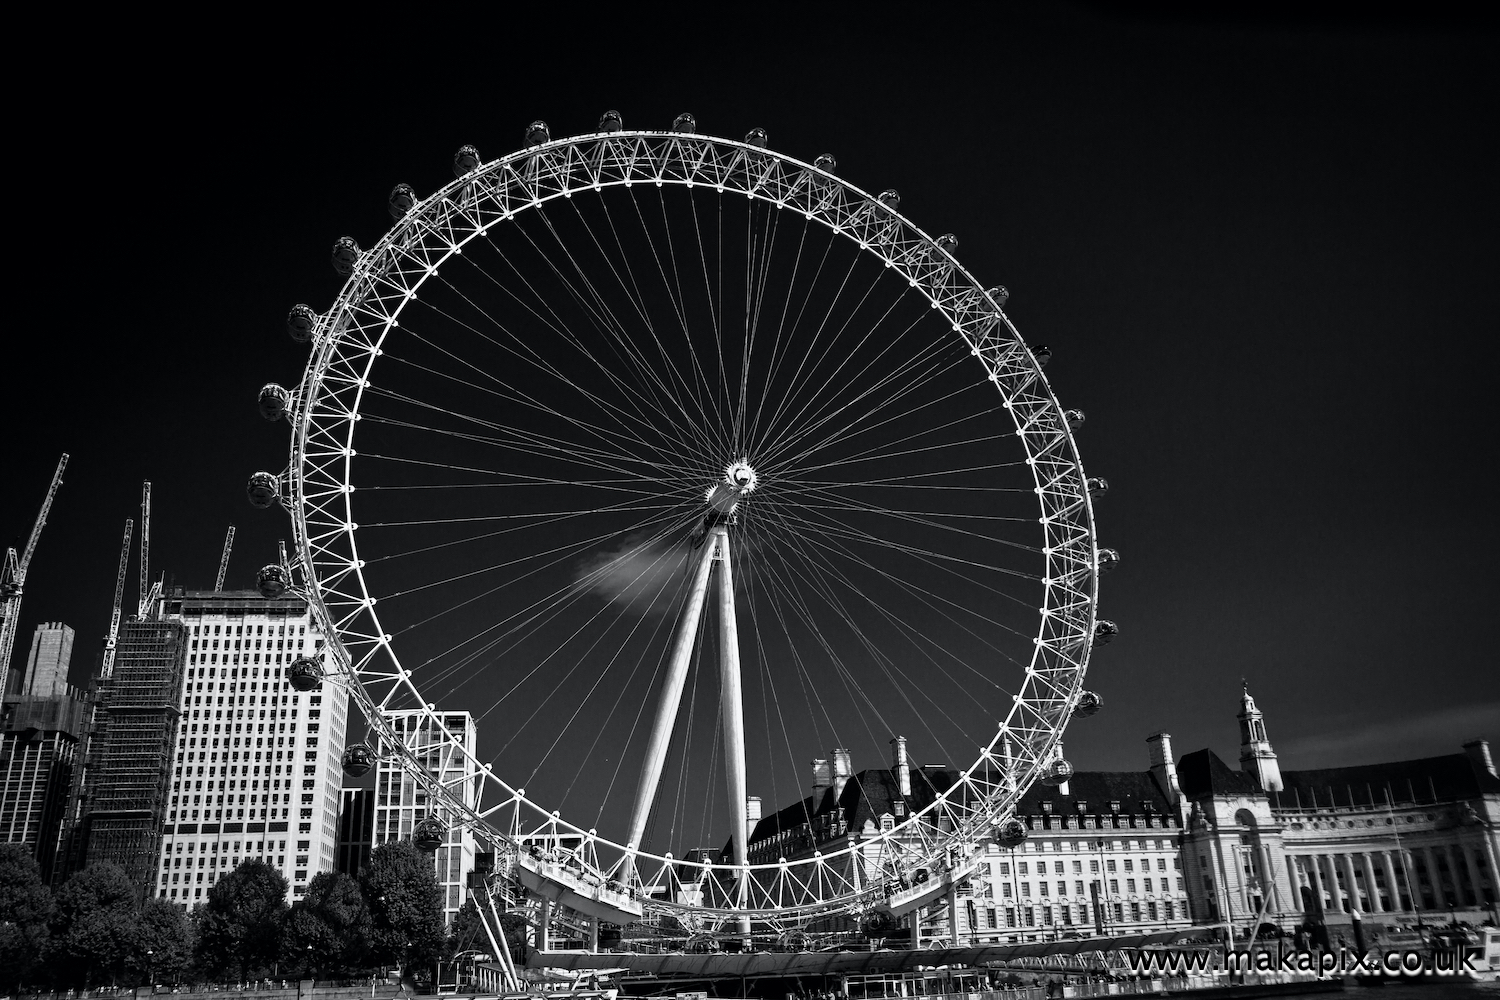 London Eye, London, England